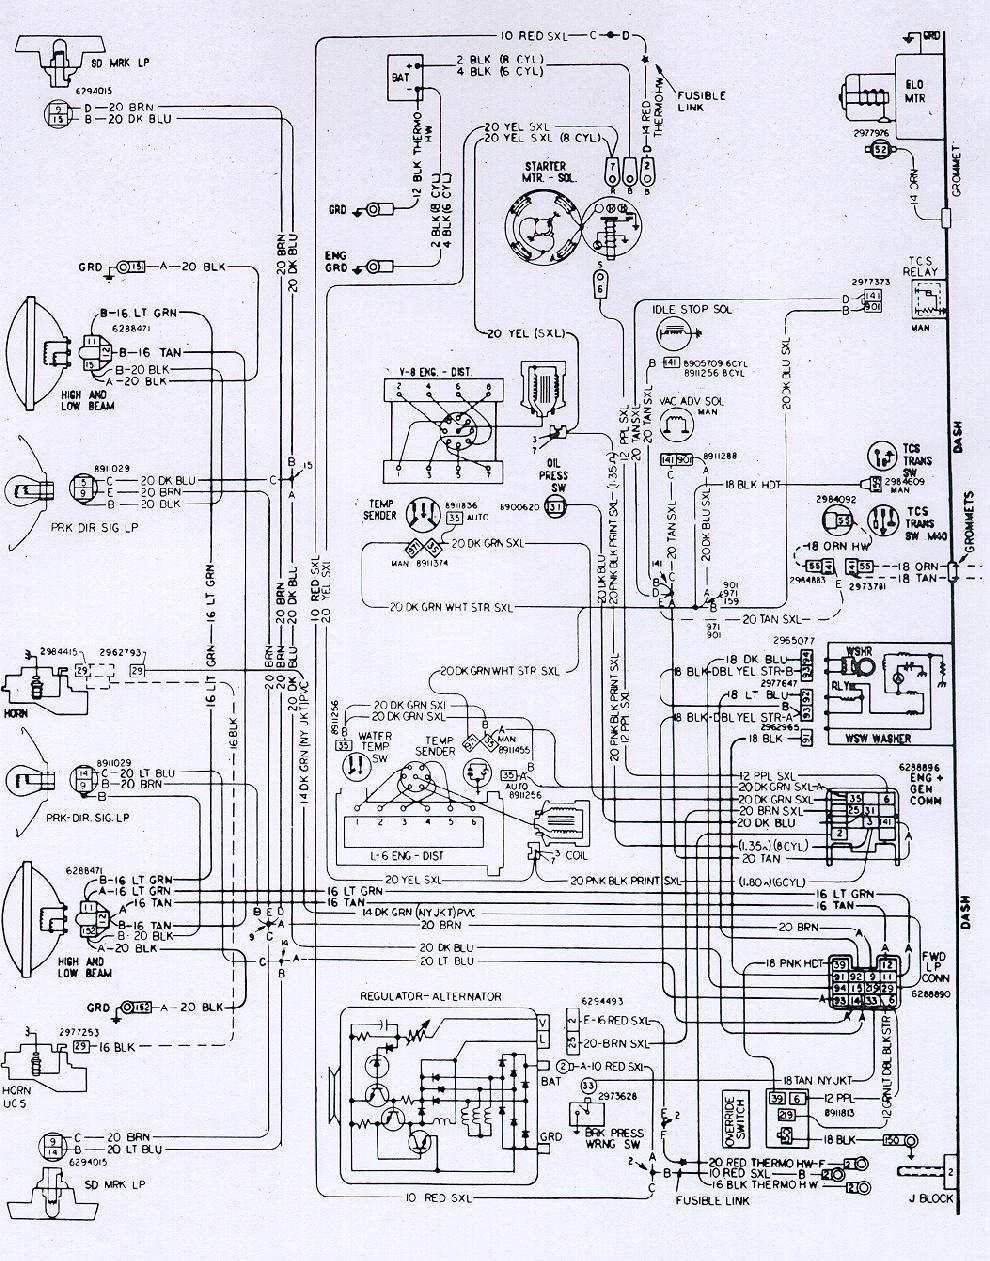 medium resolution of air conditioning wiring diagram 1964 nova smart wiring diagrams u2022 rh emgsolutions co chevy tail light